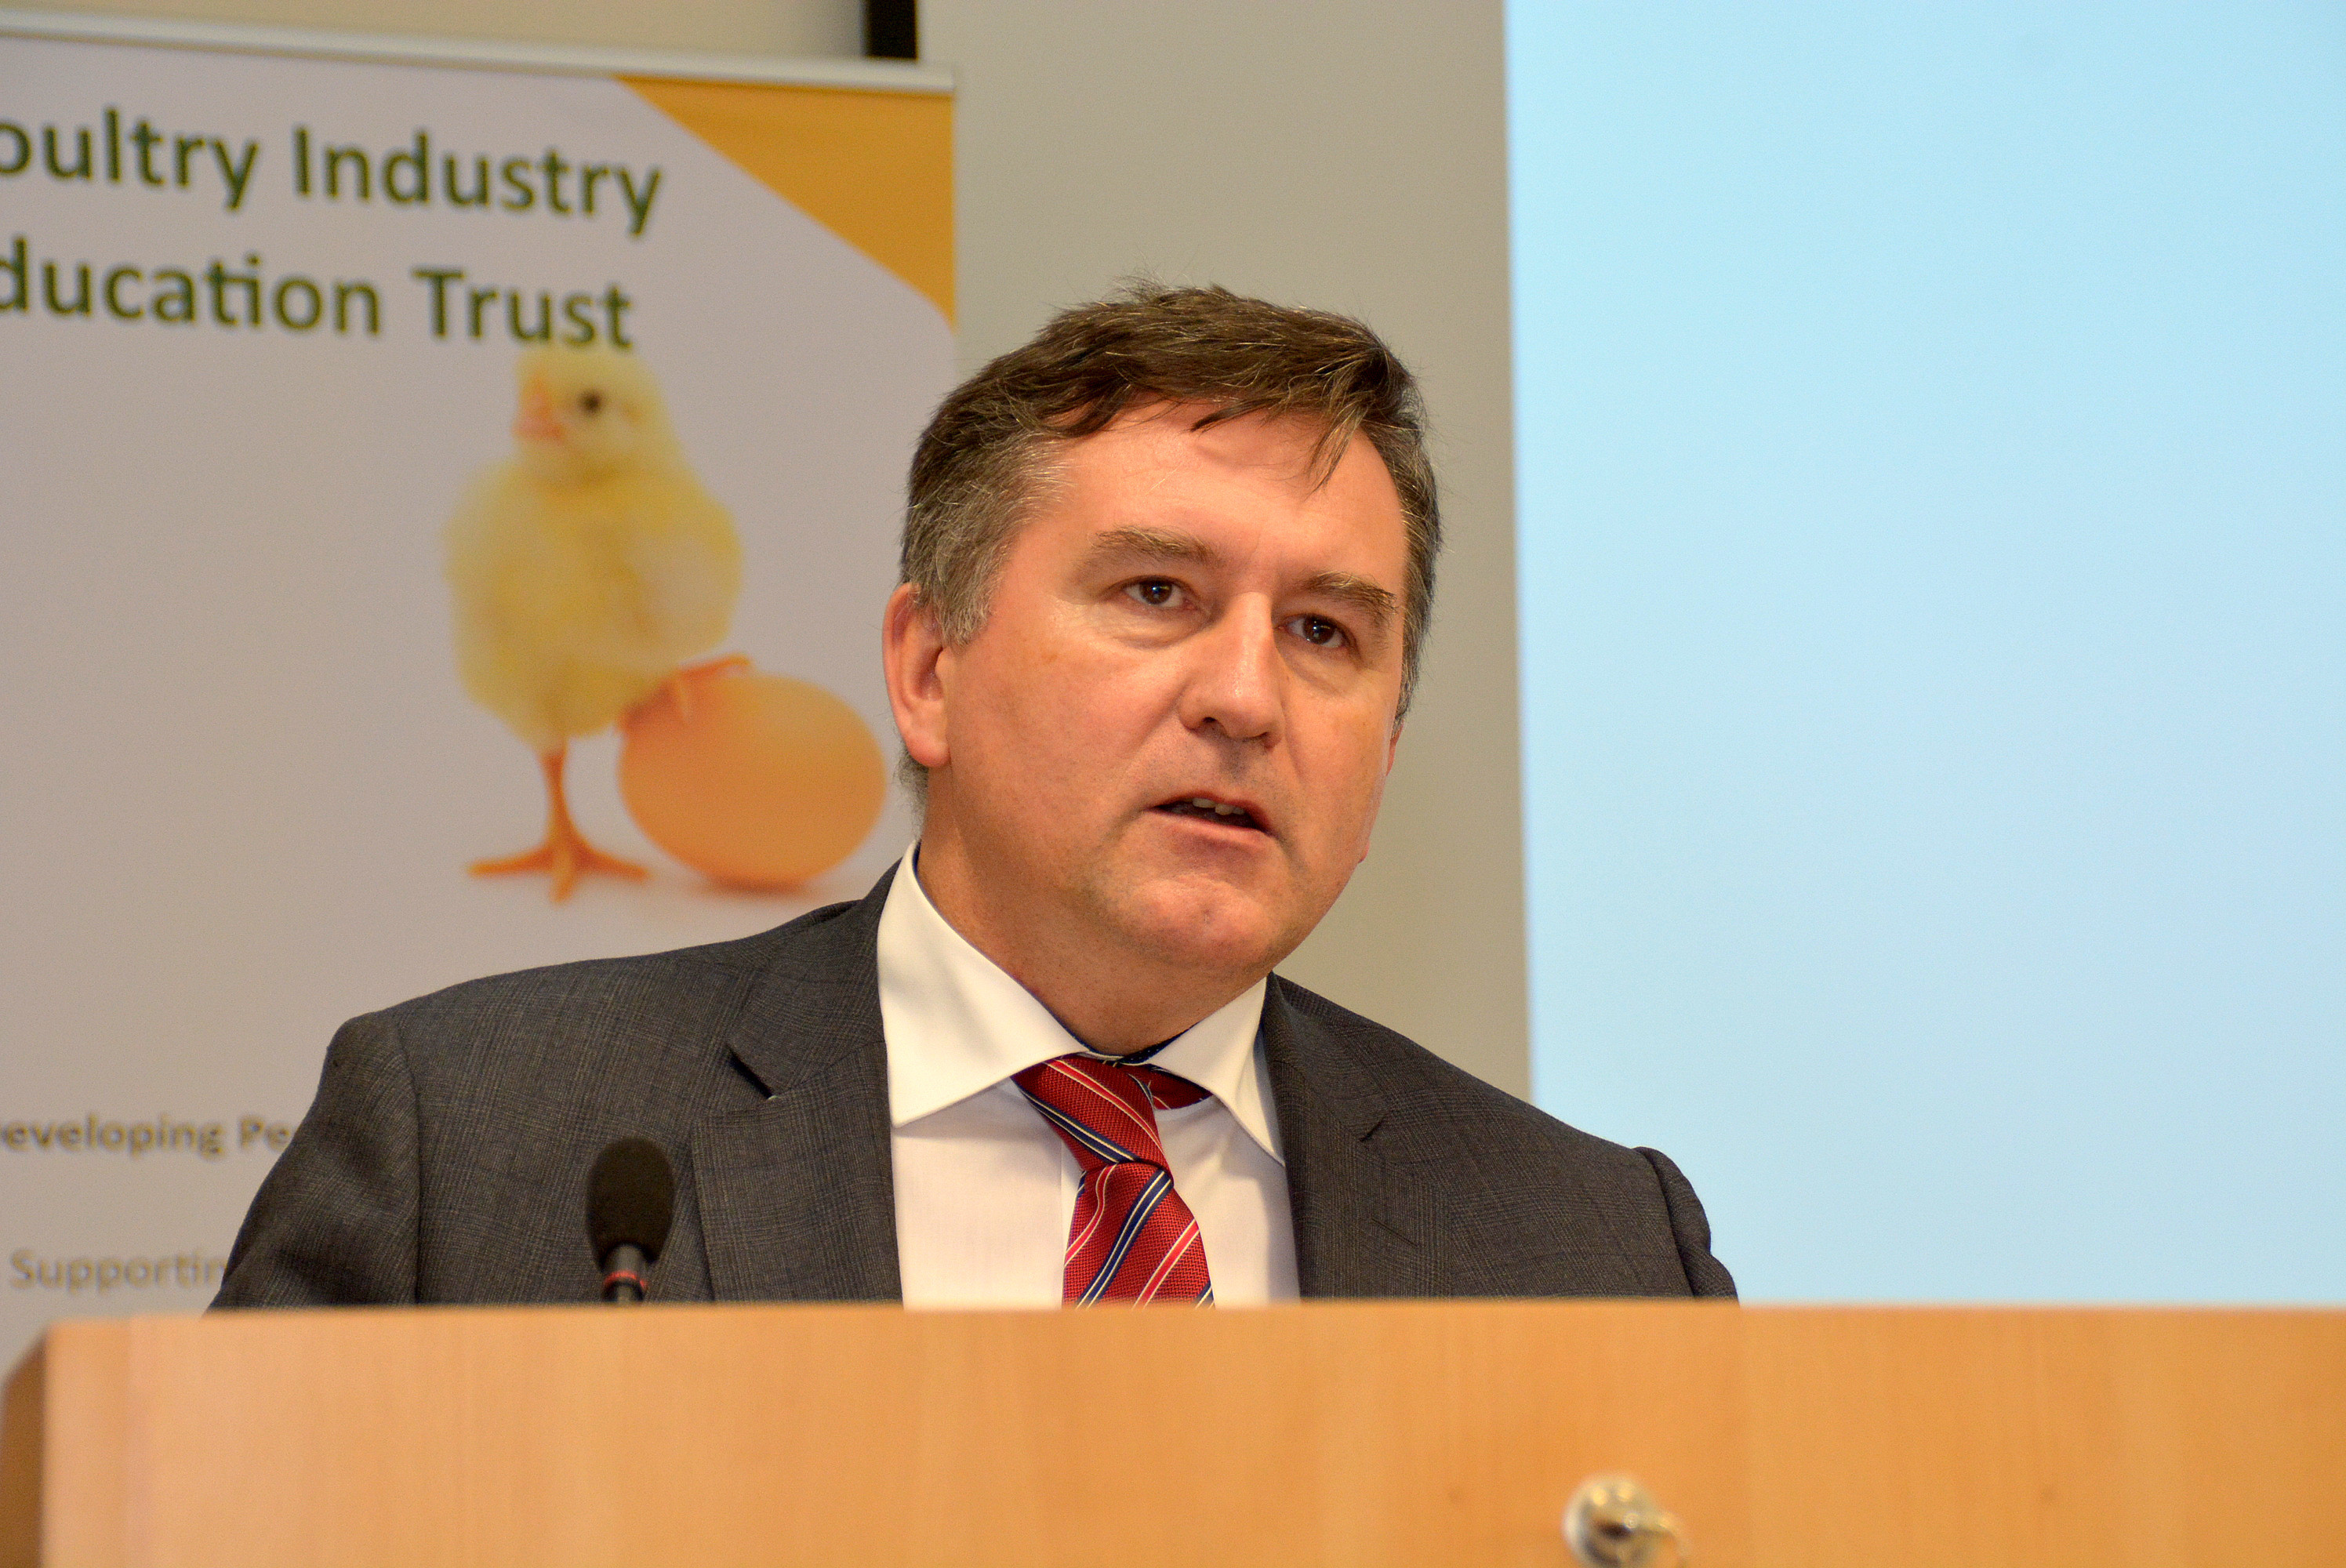 Declan Billington, CEO John Thompson & Sons and chair of Northern Ireland Food and Drink Association.